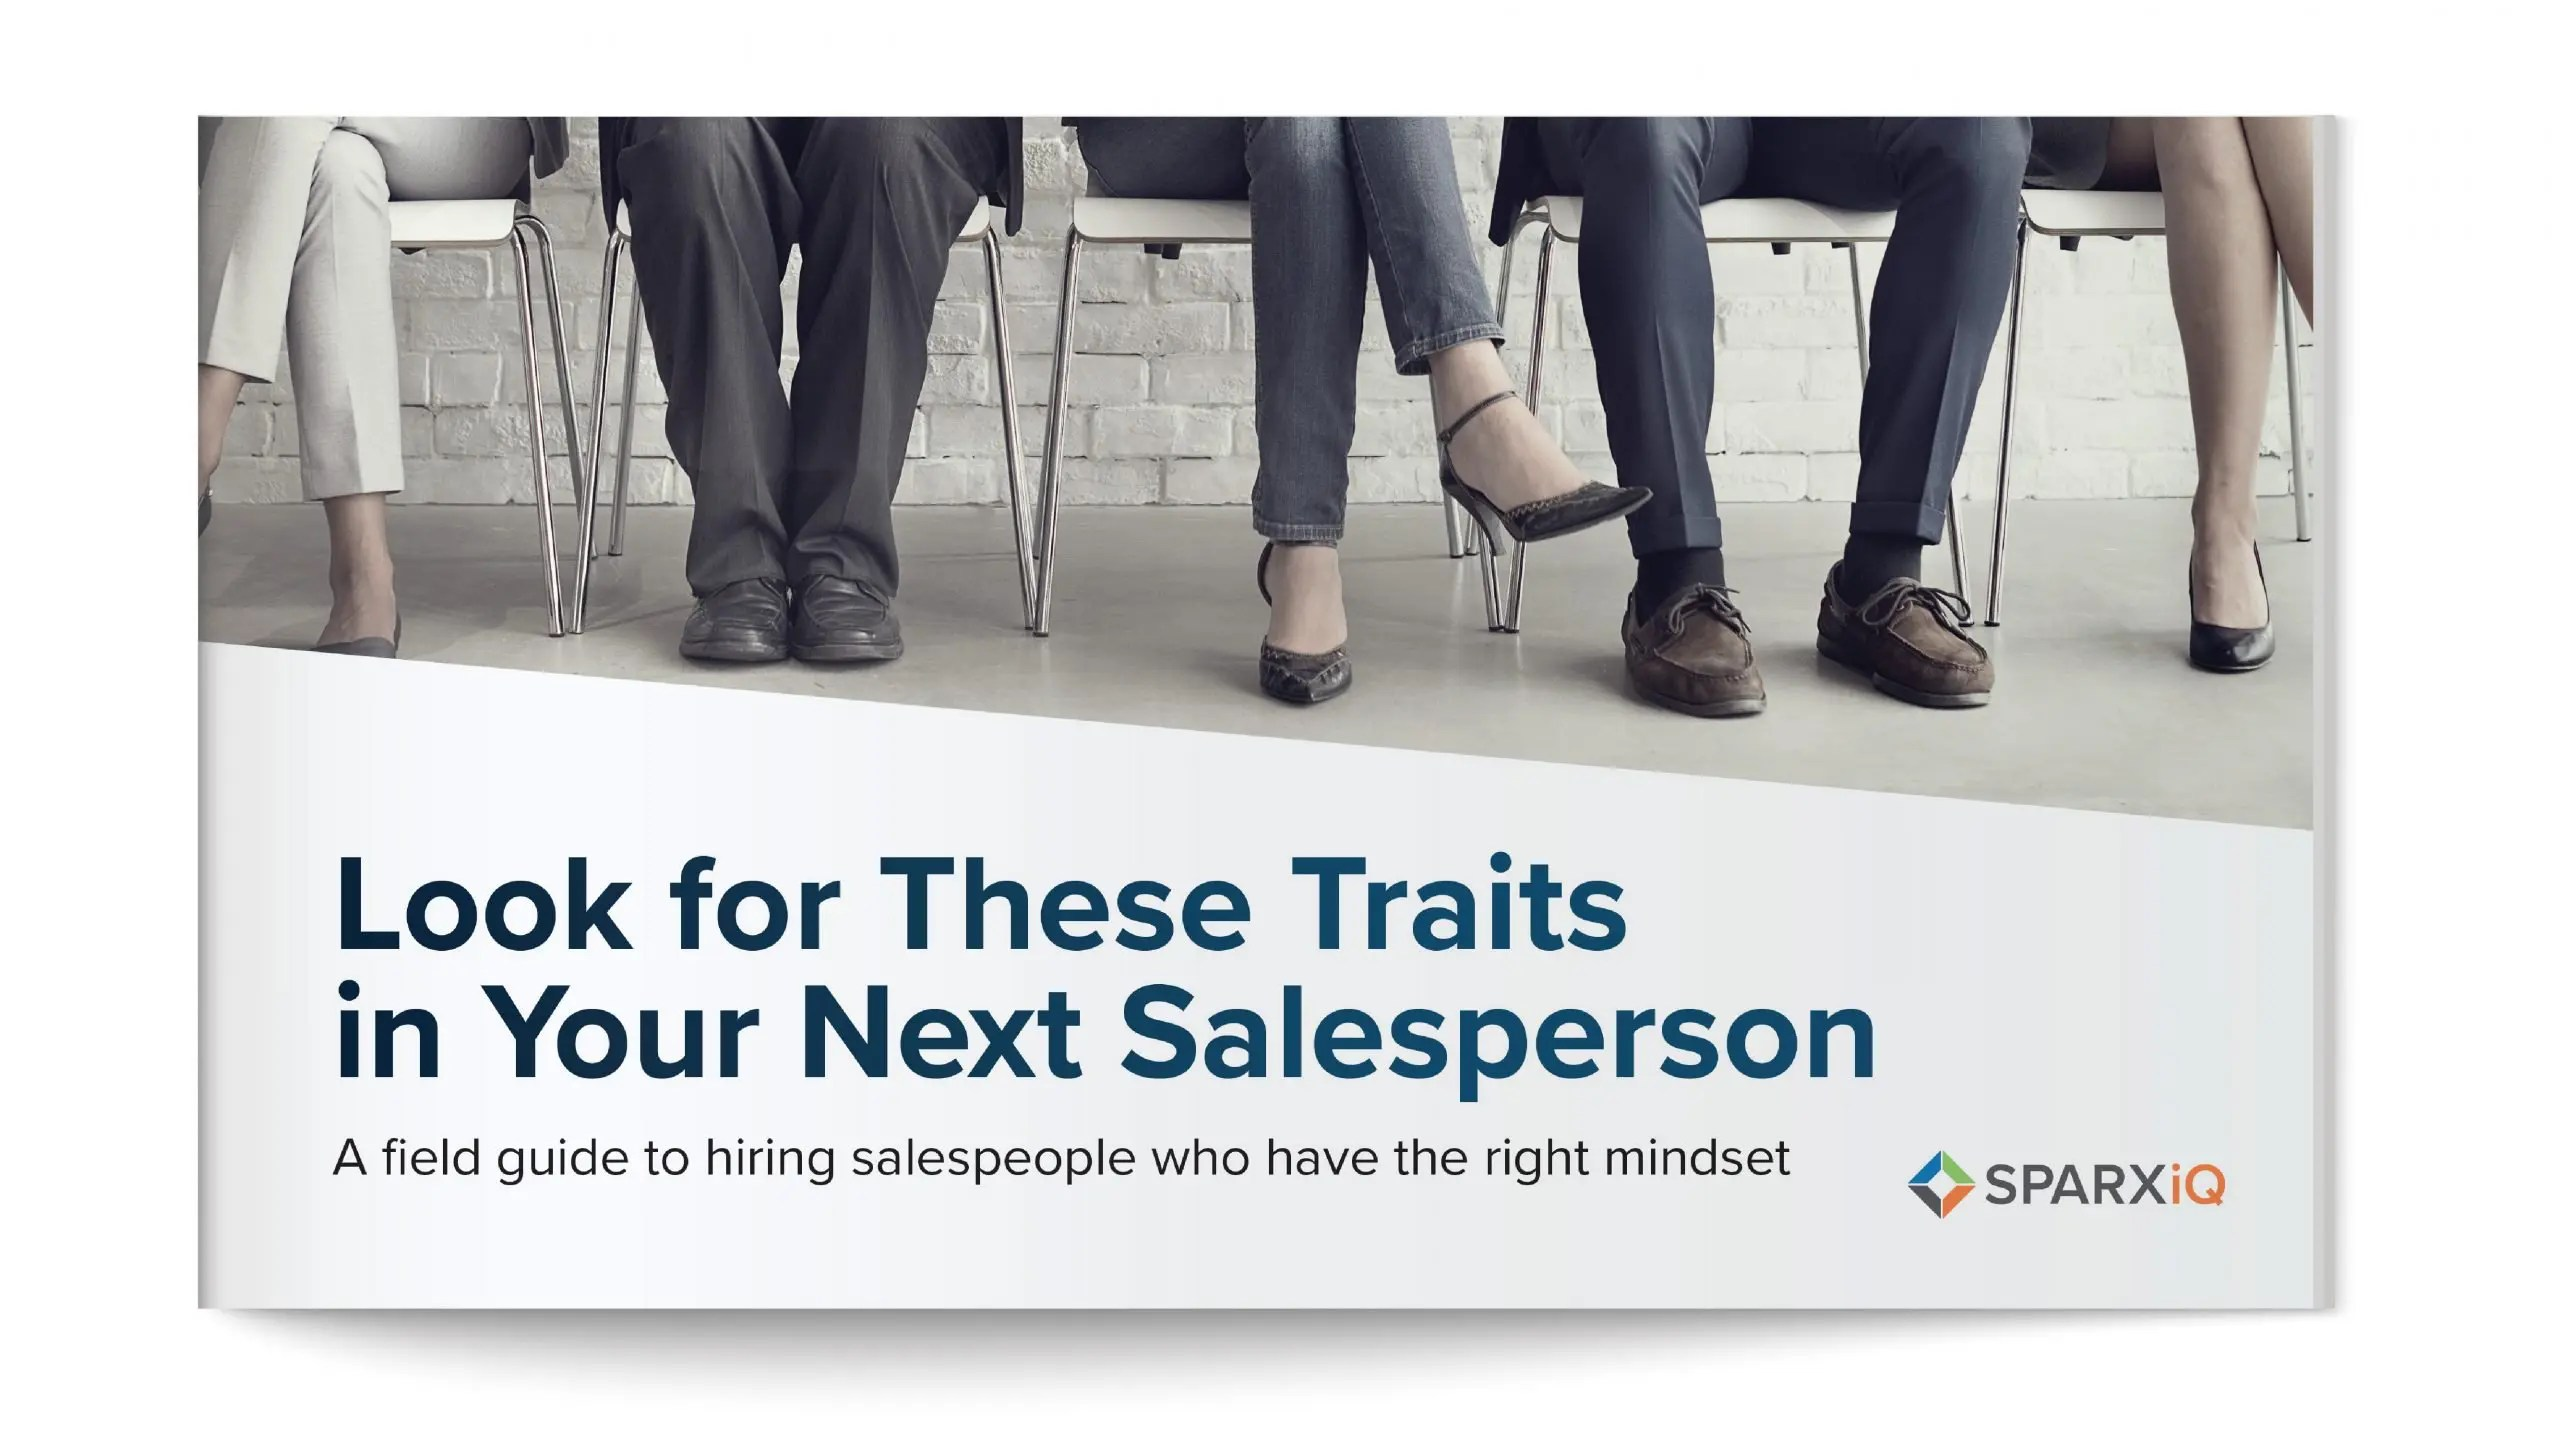 Field guide to Look for These Traits in Your Next Salesperson - SPARXiQ